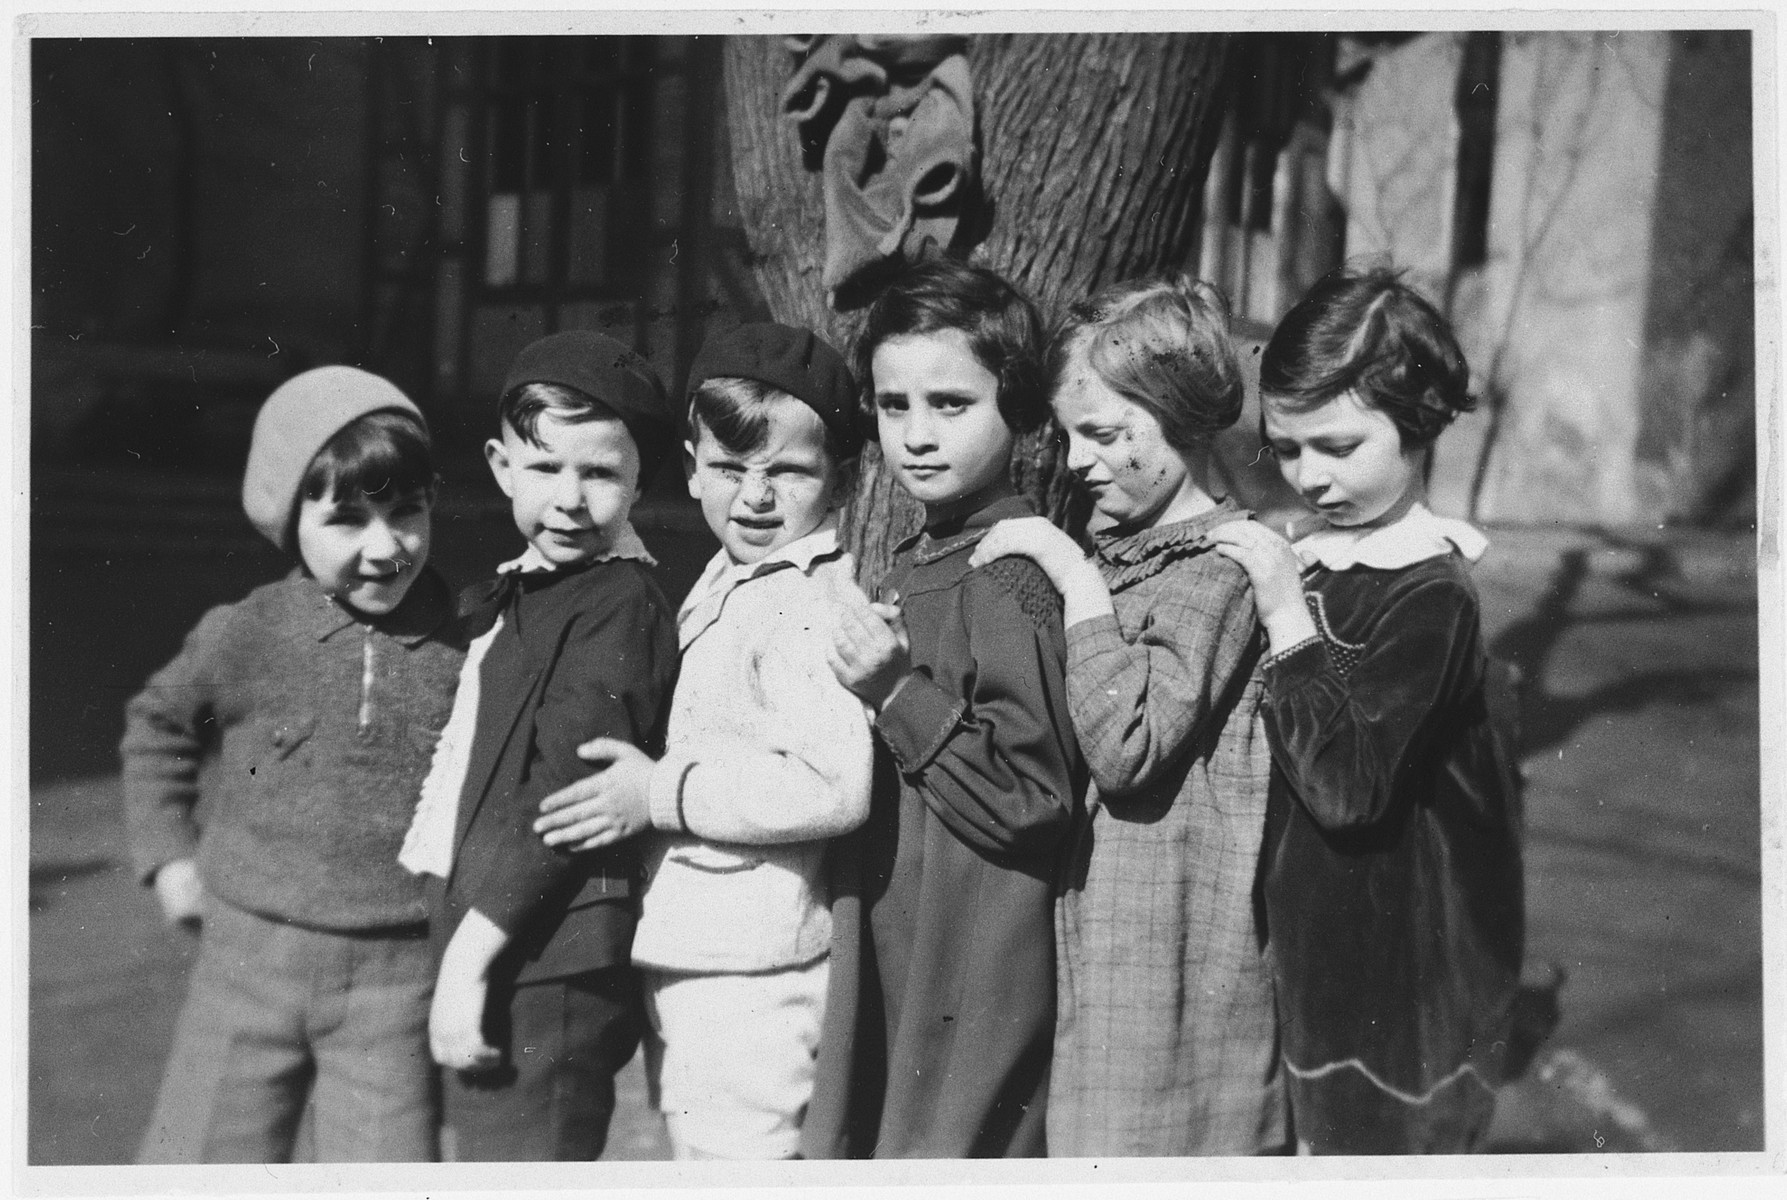 Six school friends pose in a line after the completion of first-grade.   Those pictured include Hannelore Mansbacher (second from right), Heinz Kleczewski (first from left) and Hanna Frischer (third from right). Only Hannelore Mansbacher survived the war.